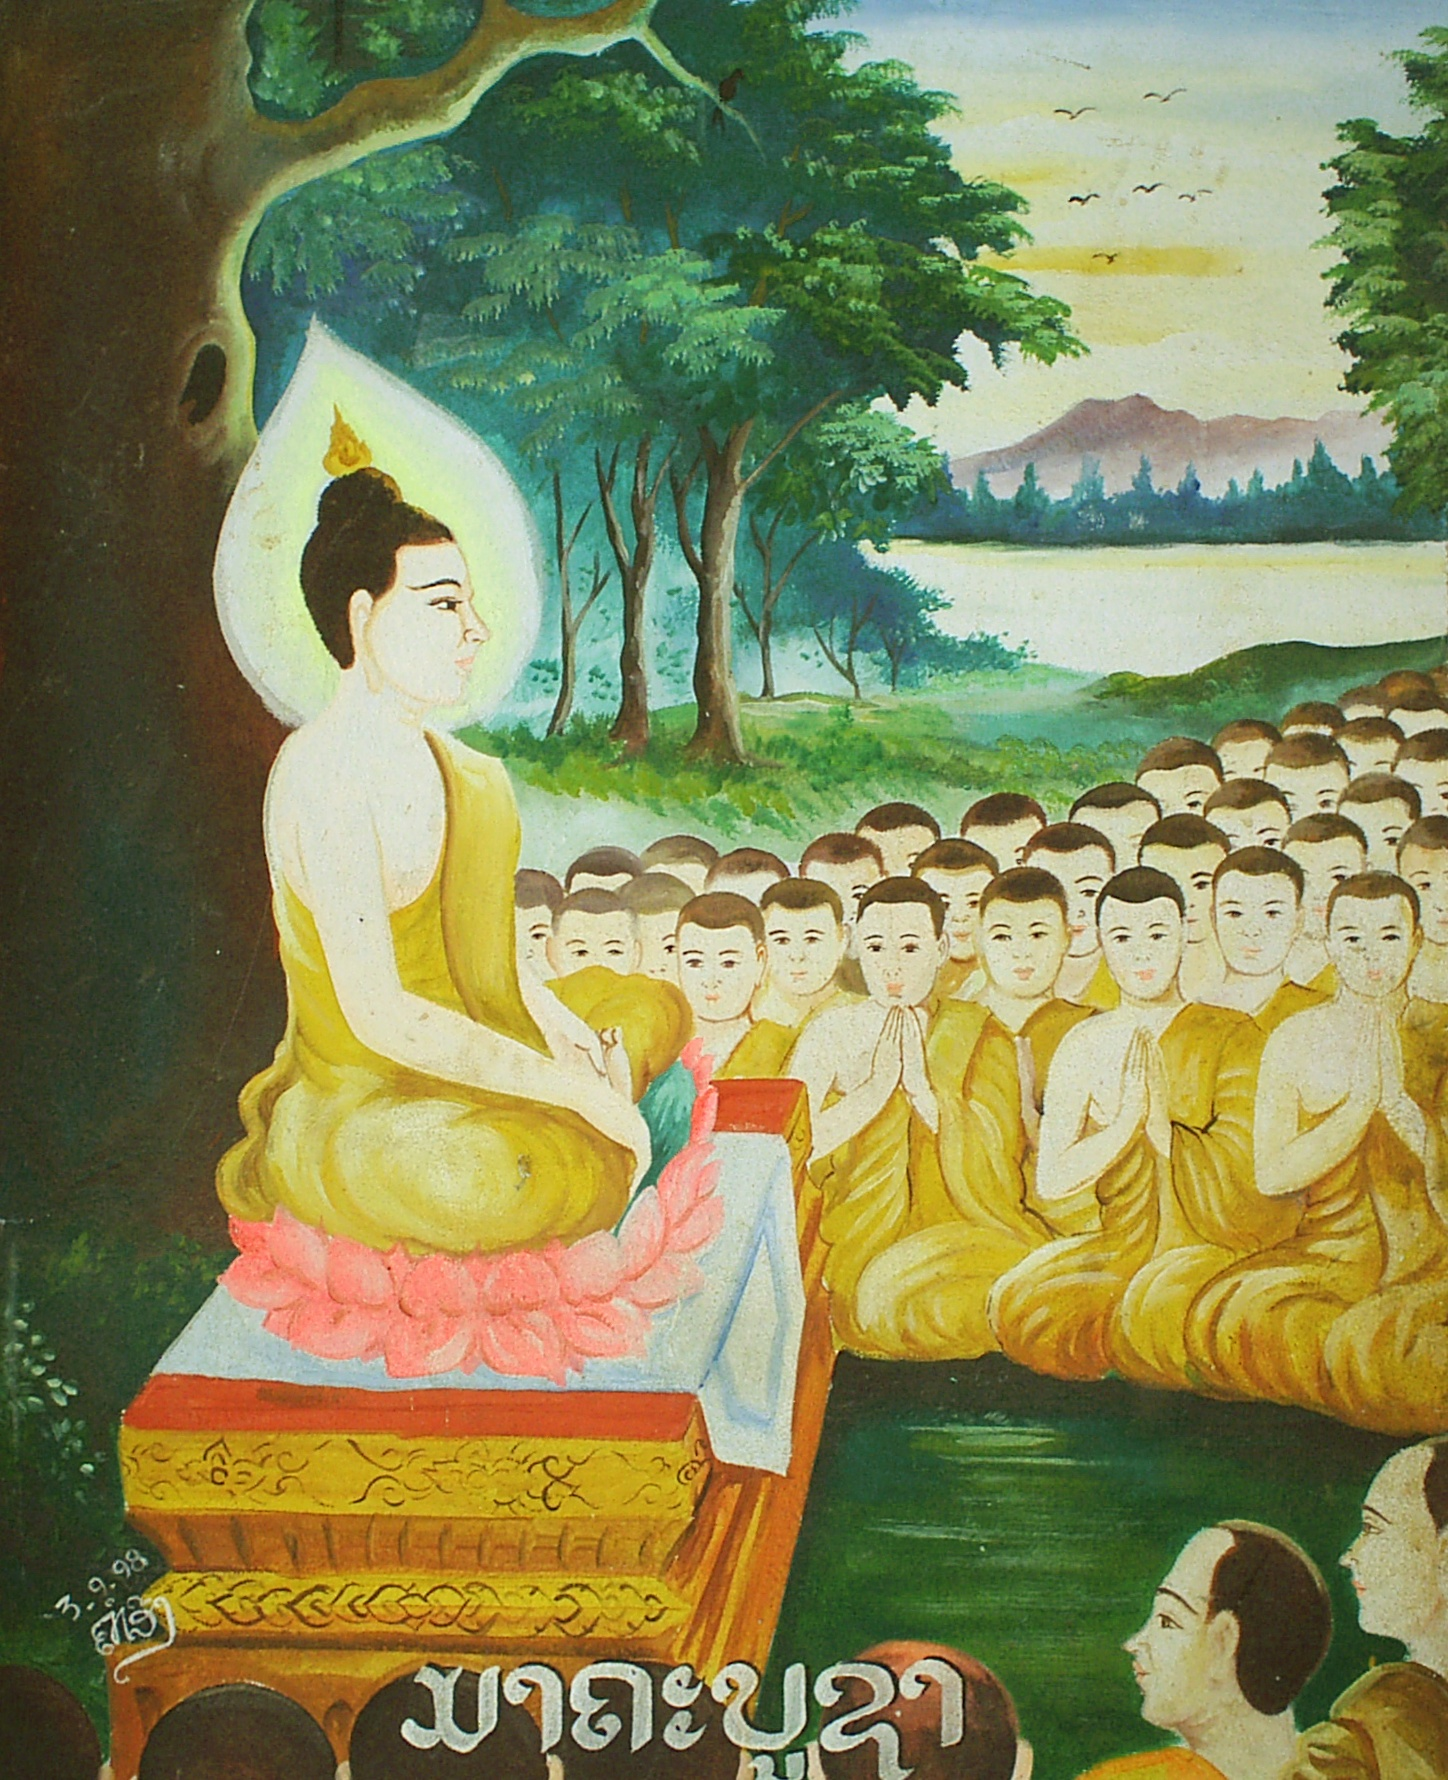 Painting of the spontaneous gathering of 1250 Arahants (Fully Enlightened Ones). Each of these Arahants came to see the Buddha at the full moon of the Indian month of Magha, without arranging with each other to do so. This is currently remembered every year on the Buddhist holy day of Makha Bucha, which usually falls in the month of February.